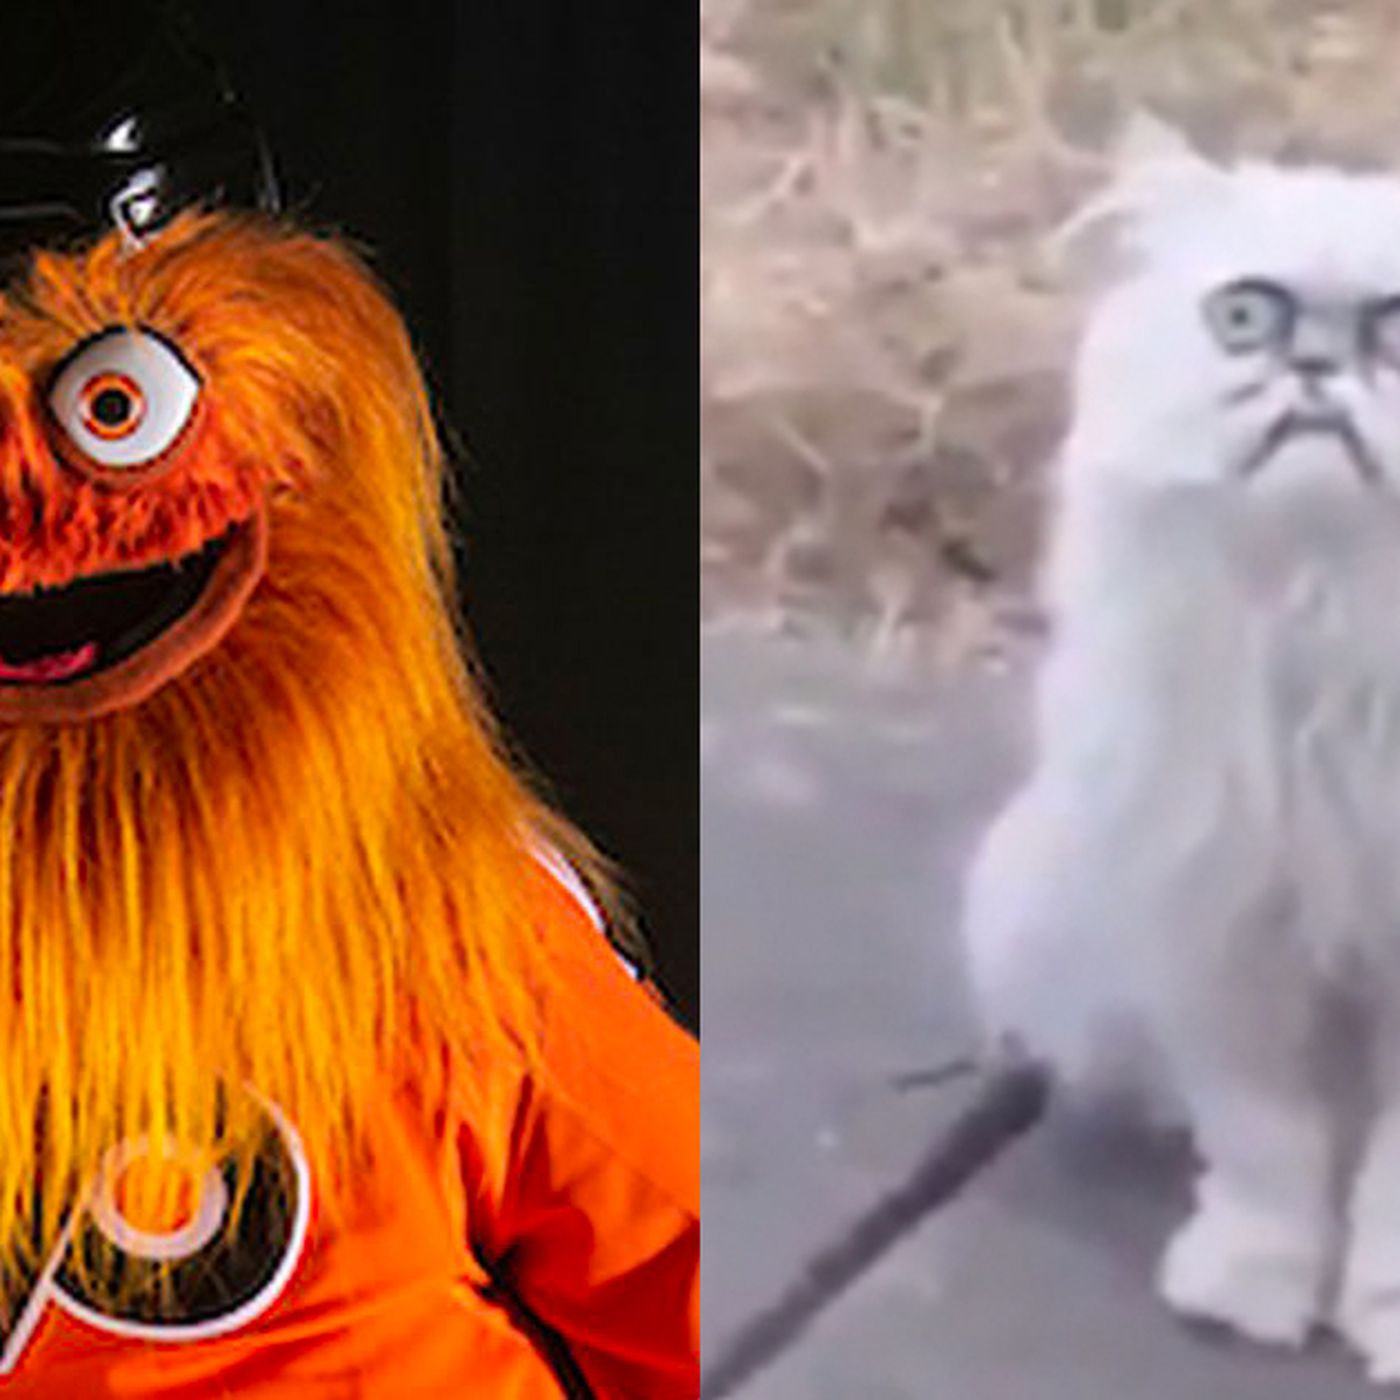 This freaky cat looks like Gritty and it's way too